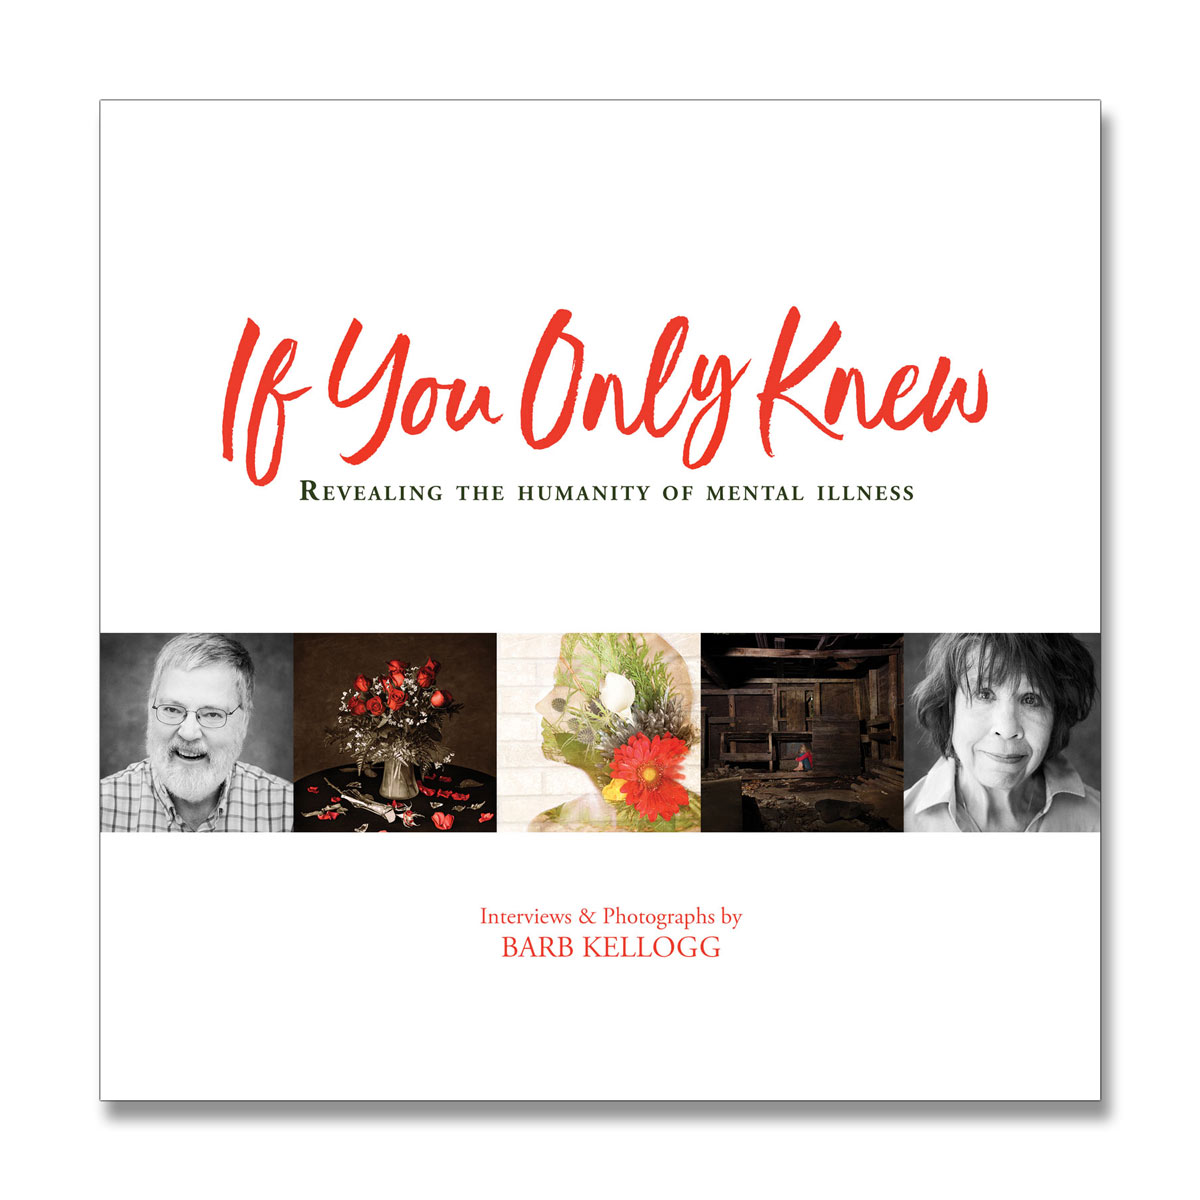 The cover of the book:  If You Only Knew , by photographer & author Barb Kellogg